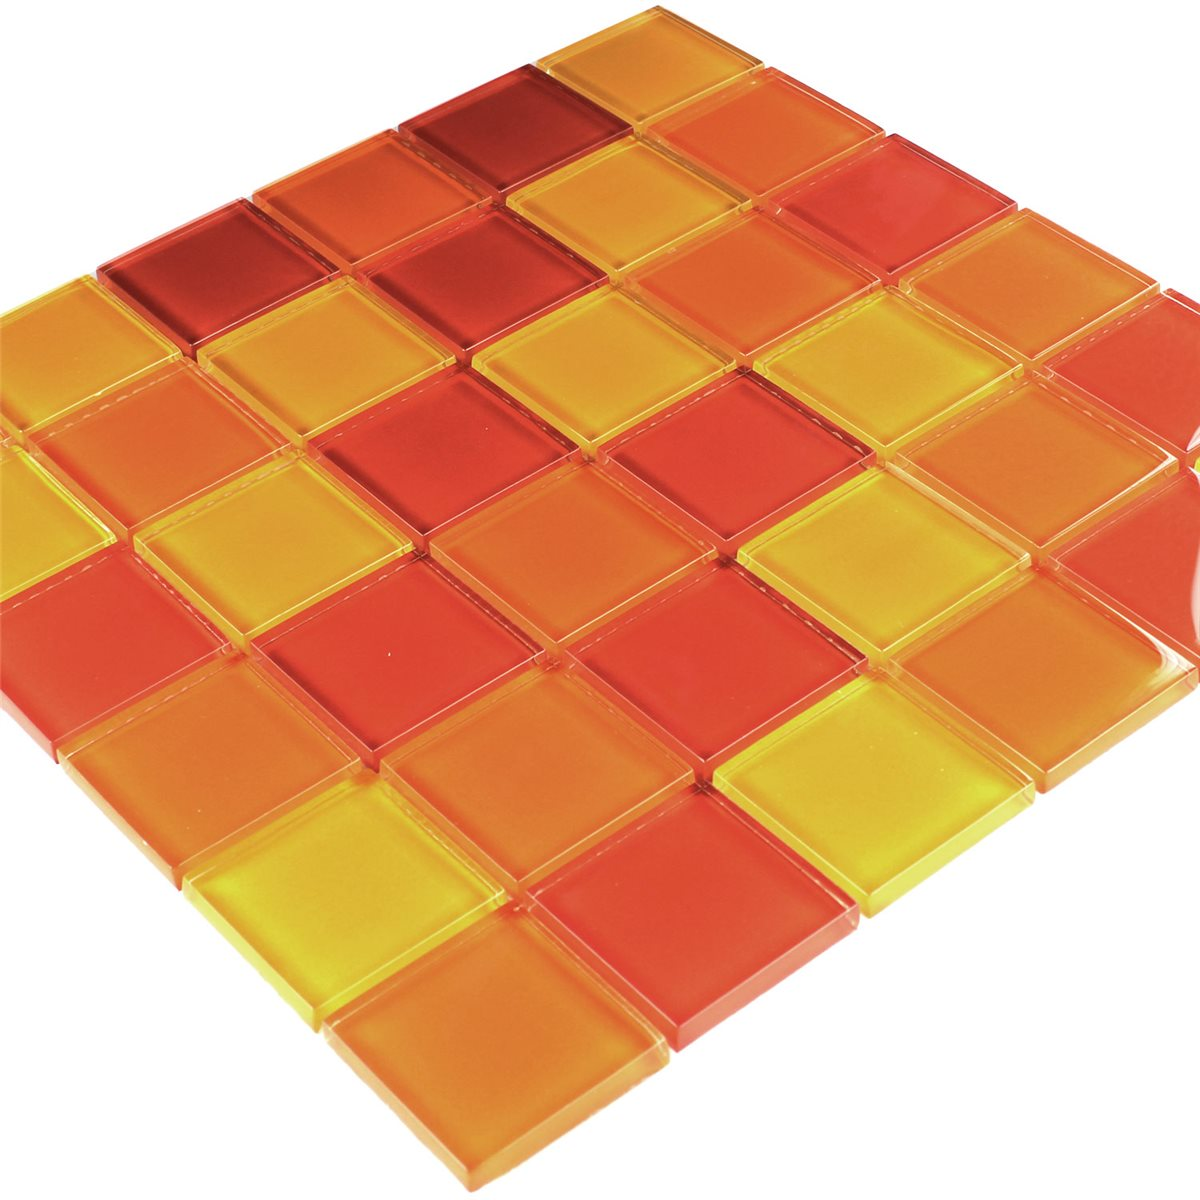 glass mosaic tile yellow orange red mix. Black Bedroom Furniture Sets. Home Design Ideas